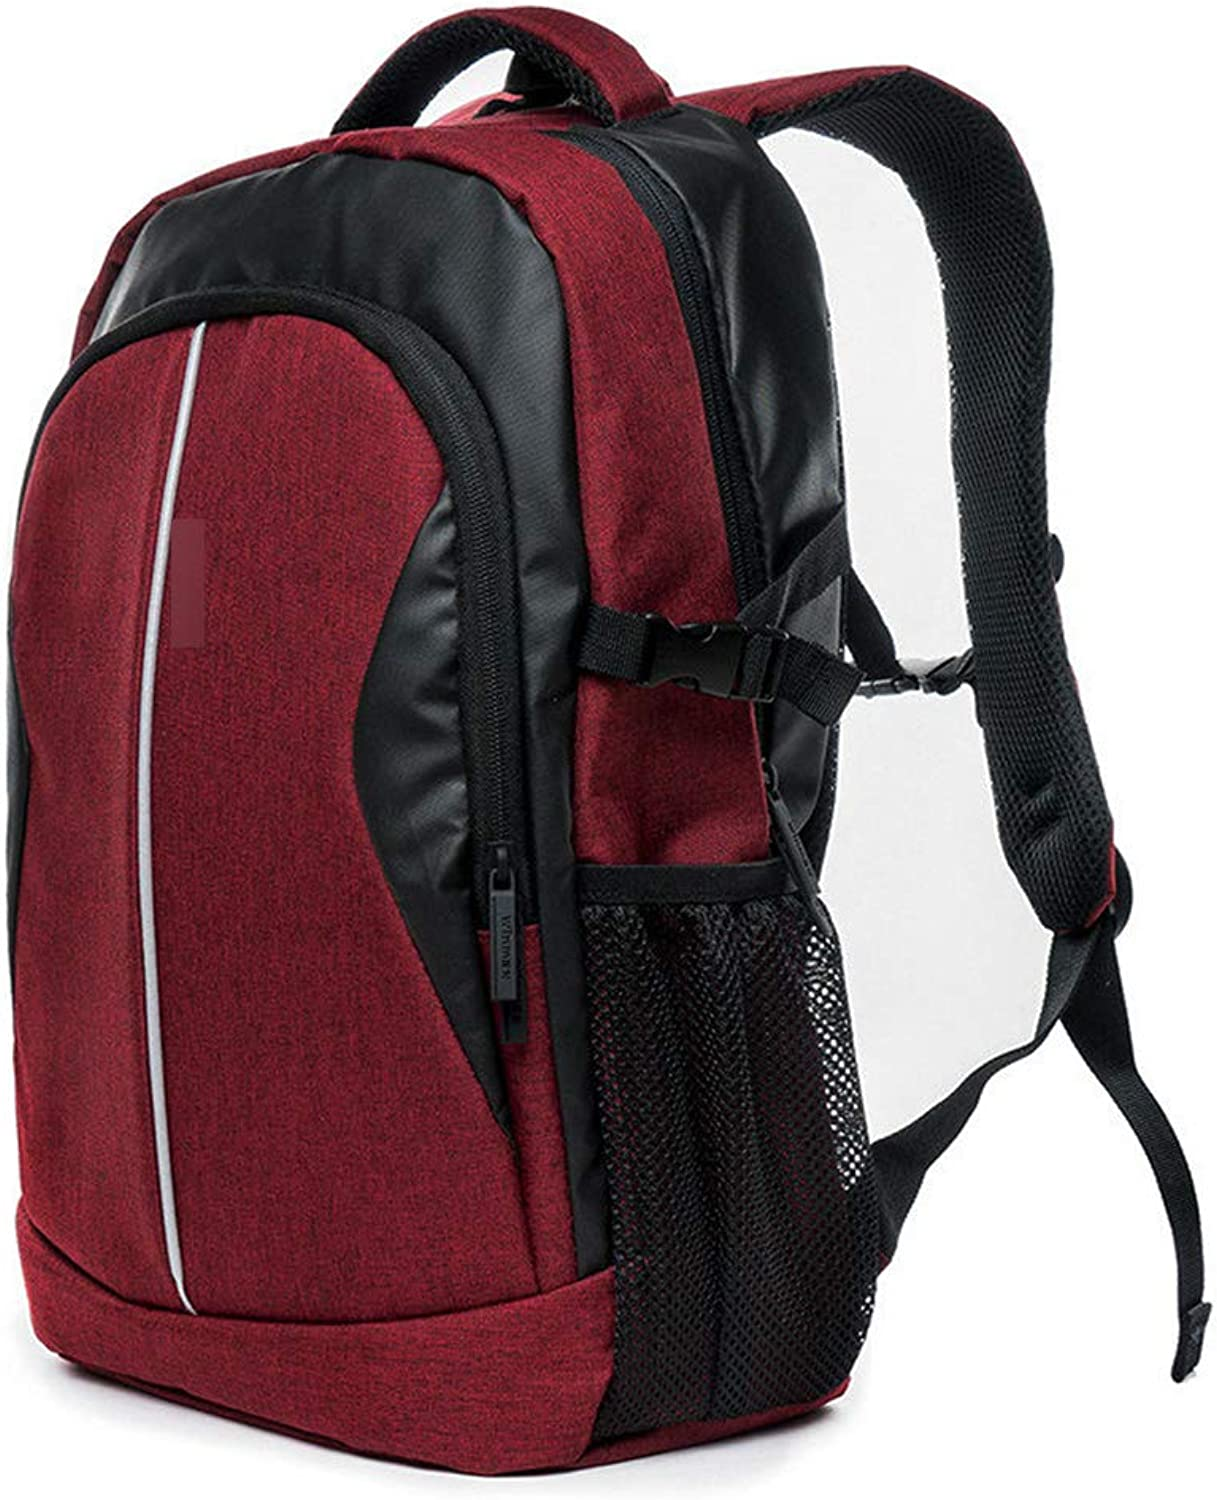 JITALFASH 30L Outdoor Bag Sport Backpack Many Pockets Men Travel Pack Bag Women Backpack Camping Hiking Cycling Rucksack School Bag Red OneSize